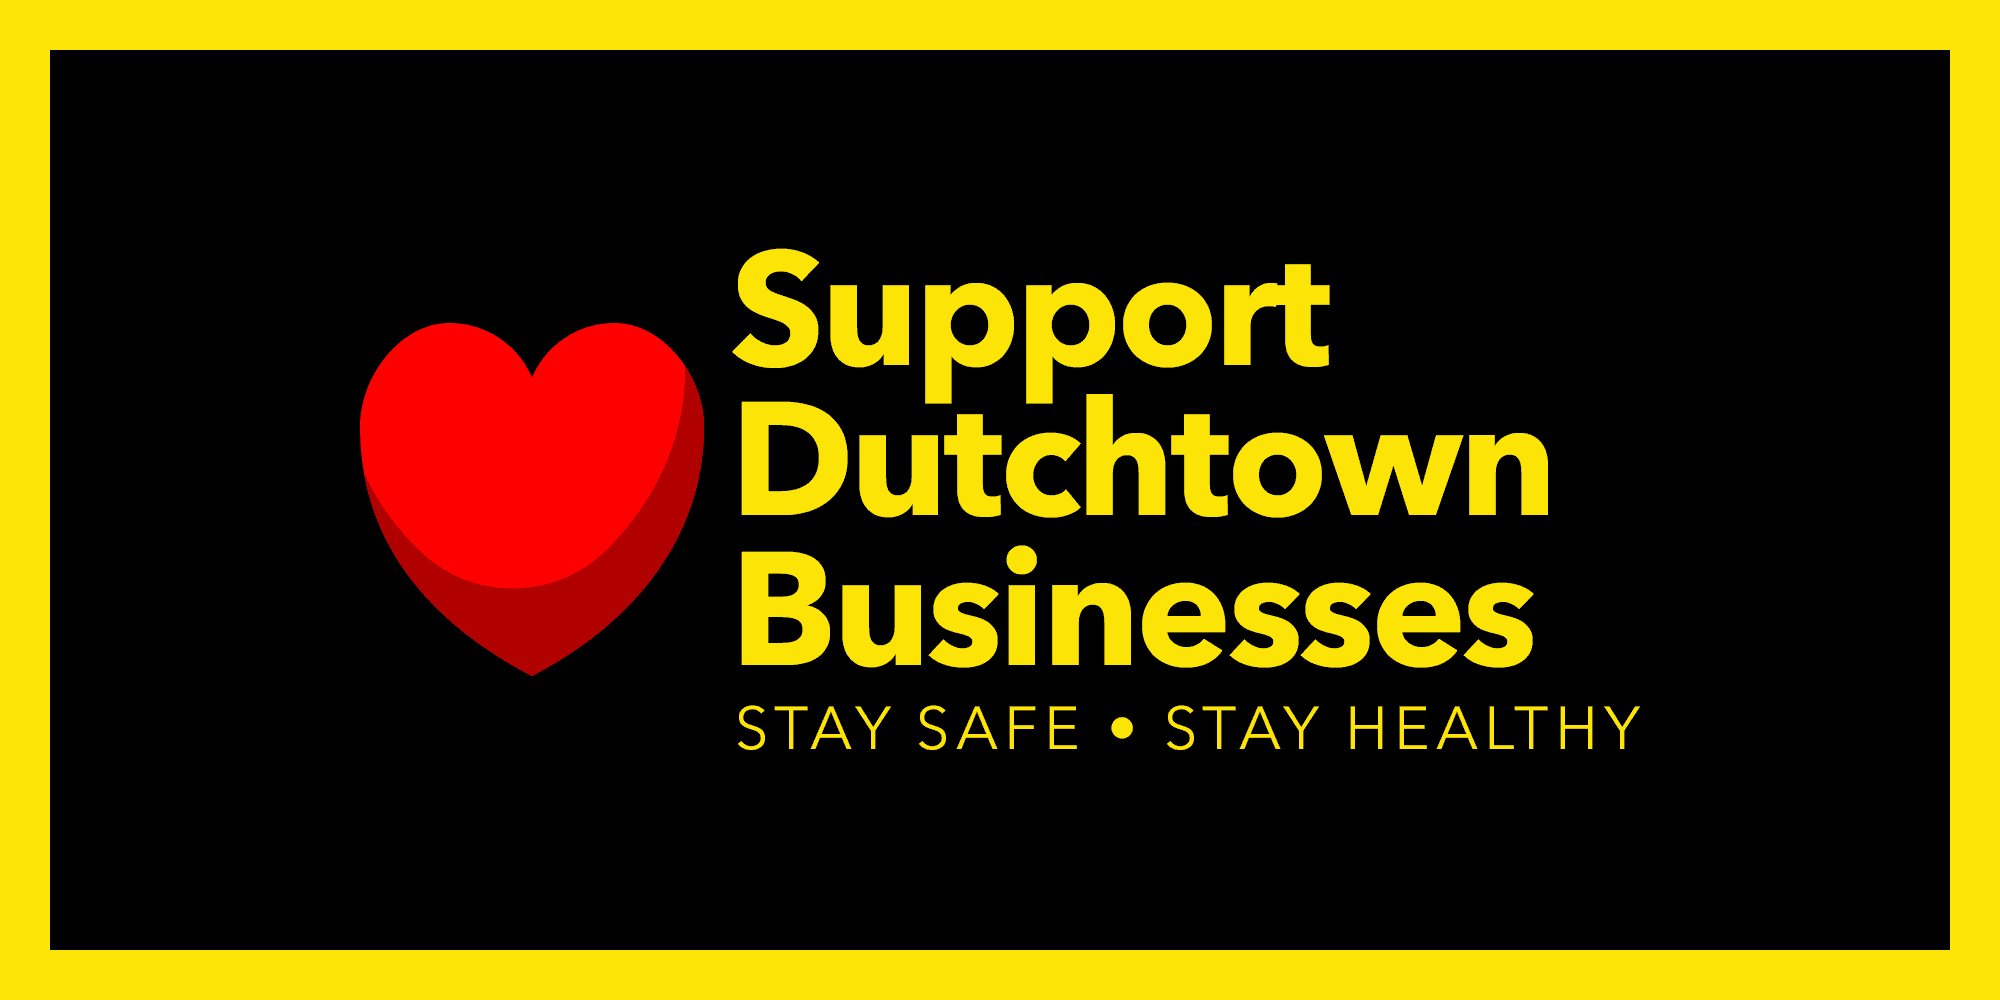 Support Dutchtown businesses. Stay safe, stay healthy.